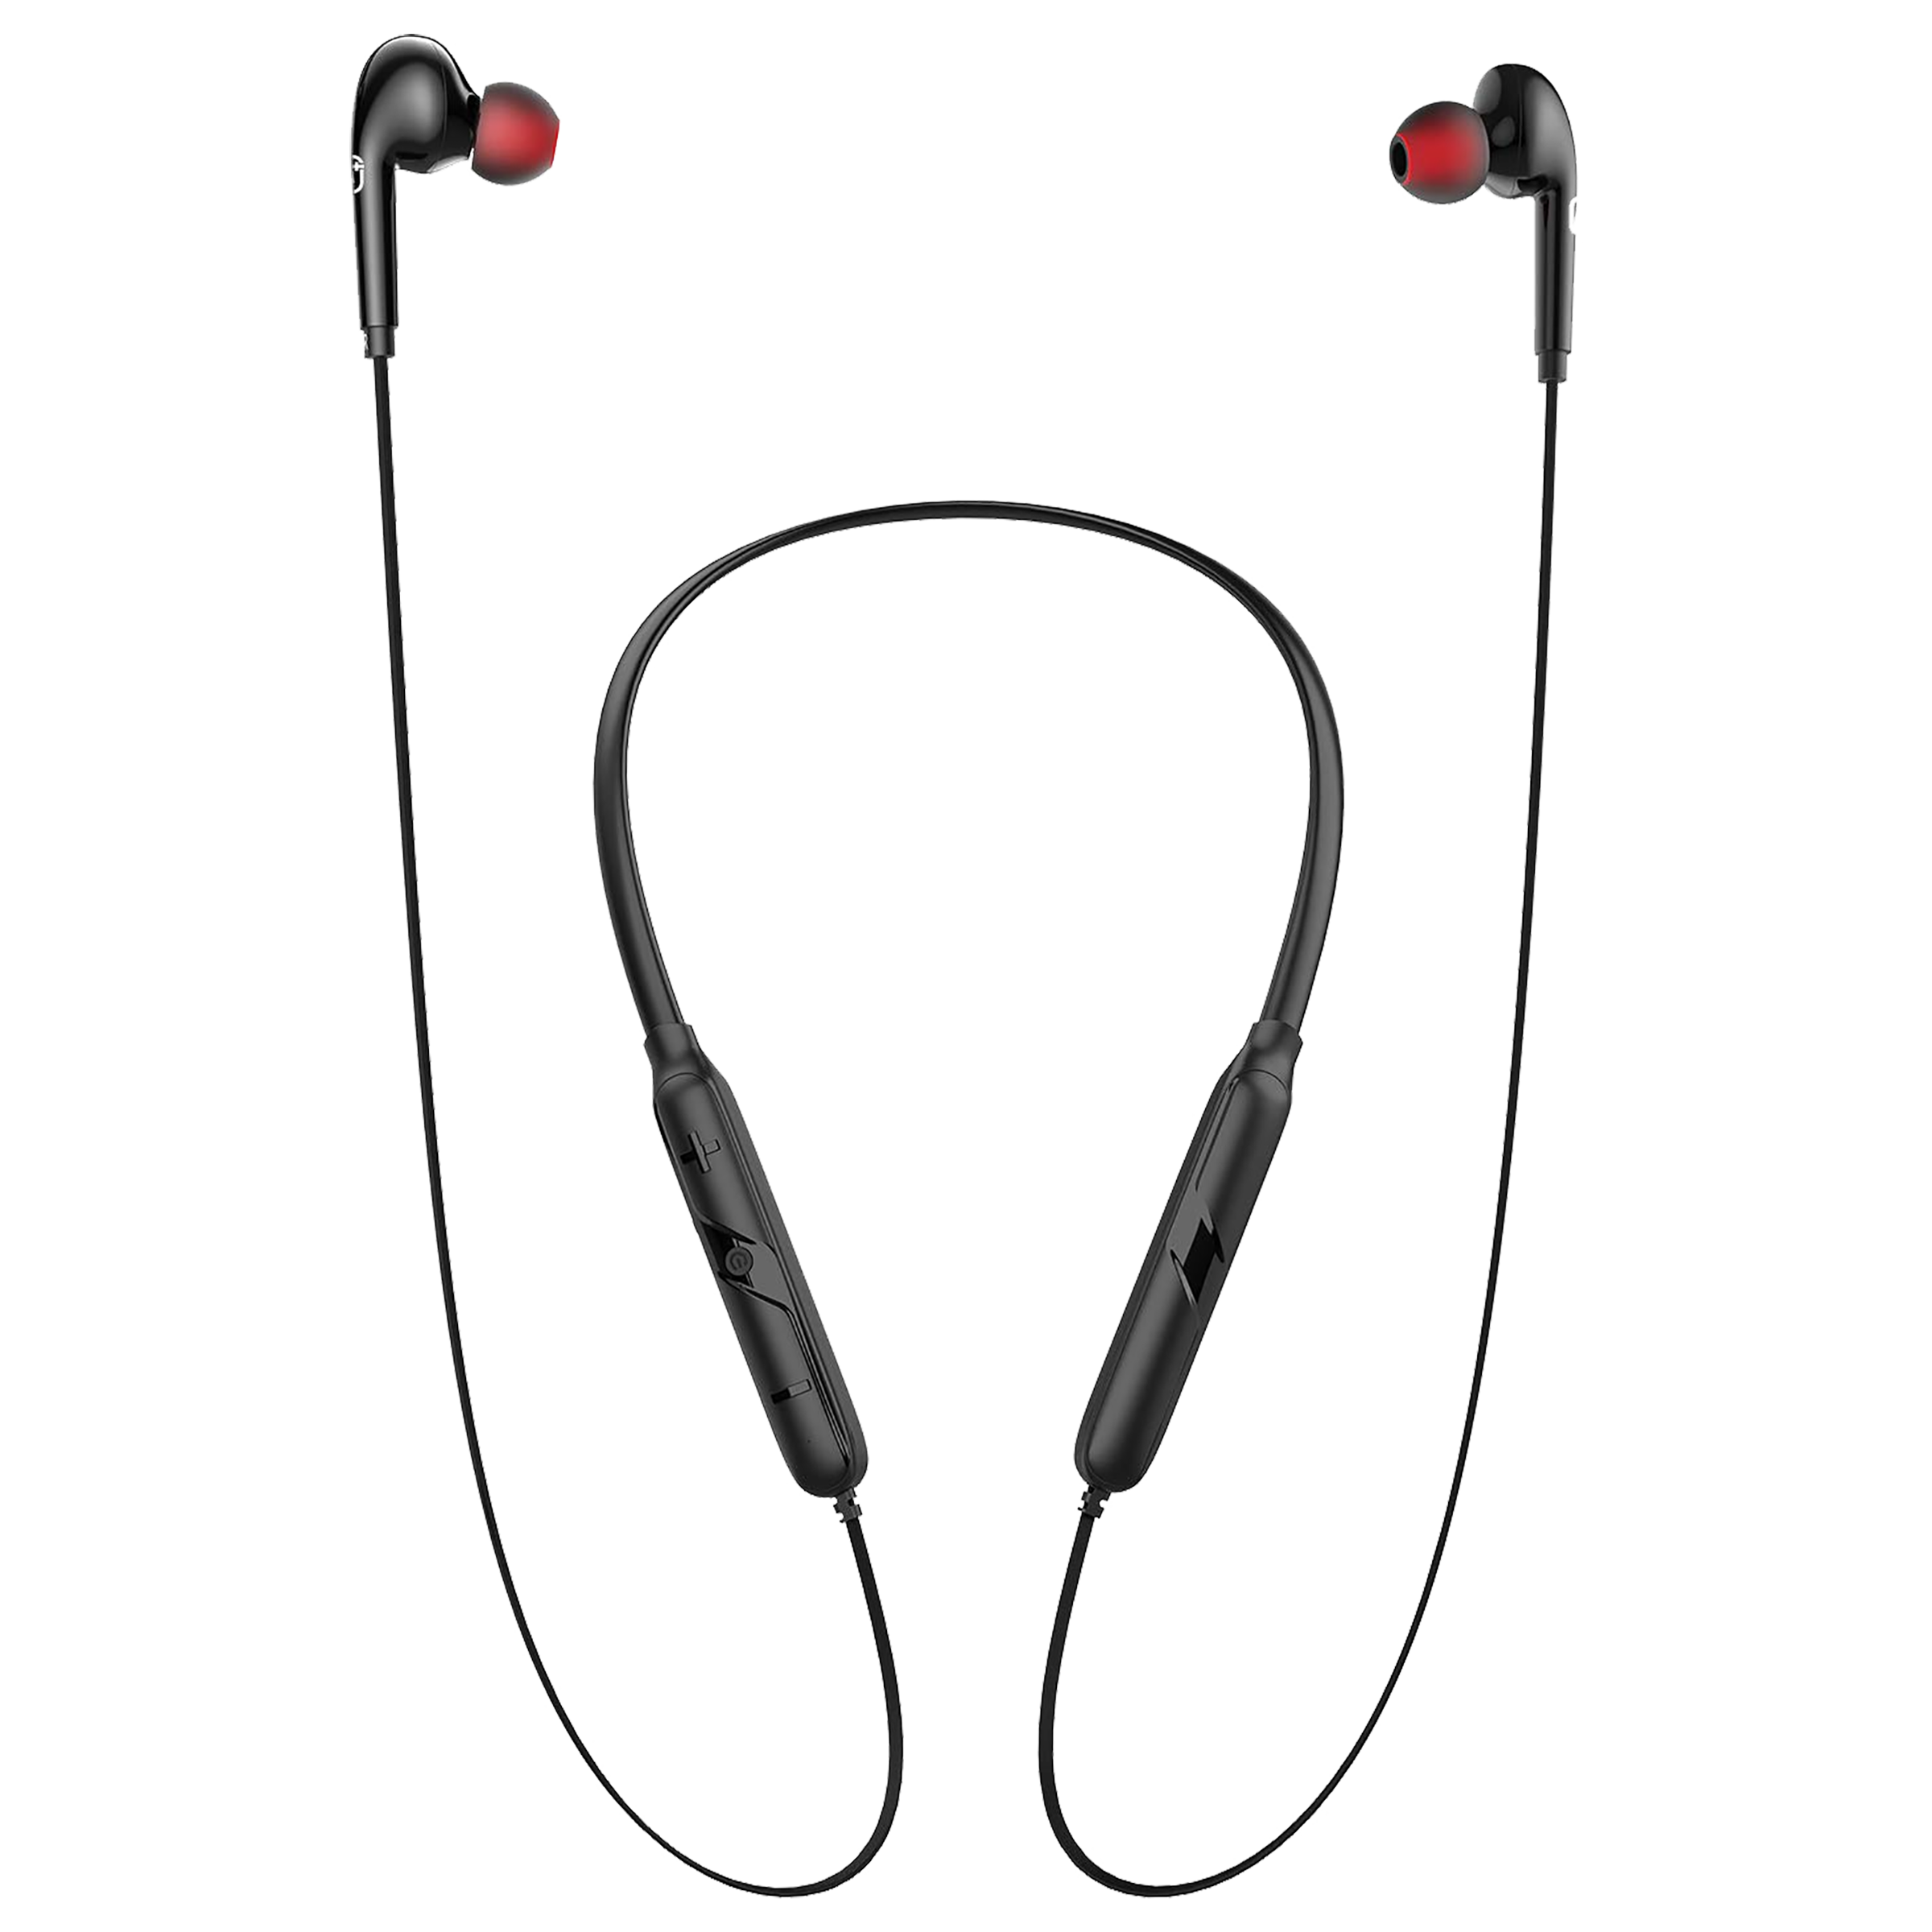 MATATA In-Ear Wireless Earphone with Mic (Bluetooth 4.2, Up to 5 Hrs Working Time, MTEBGP3, Black)_1